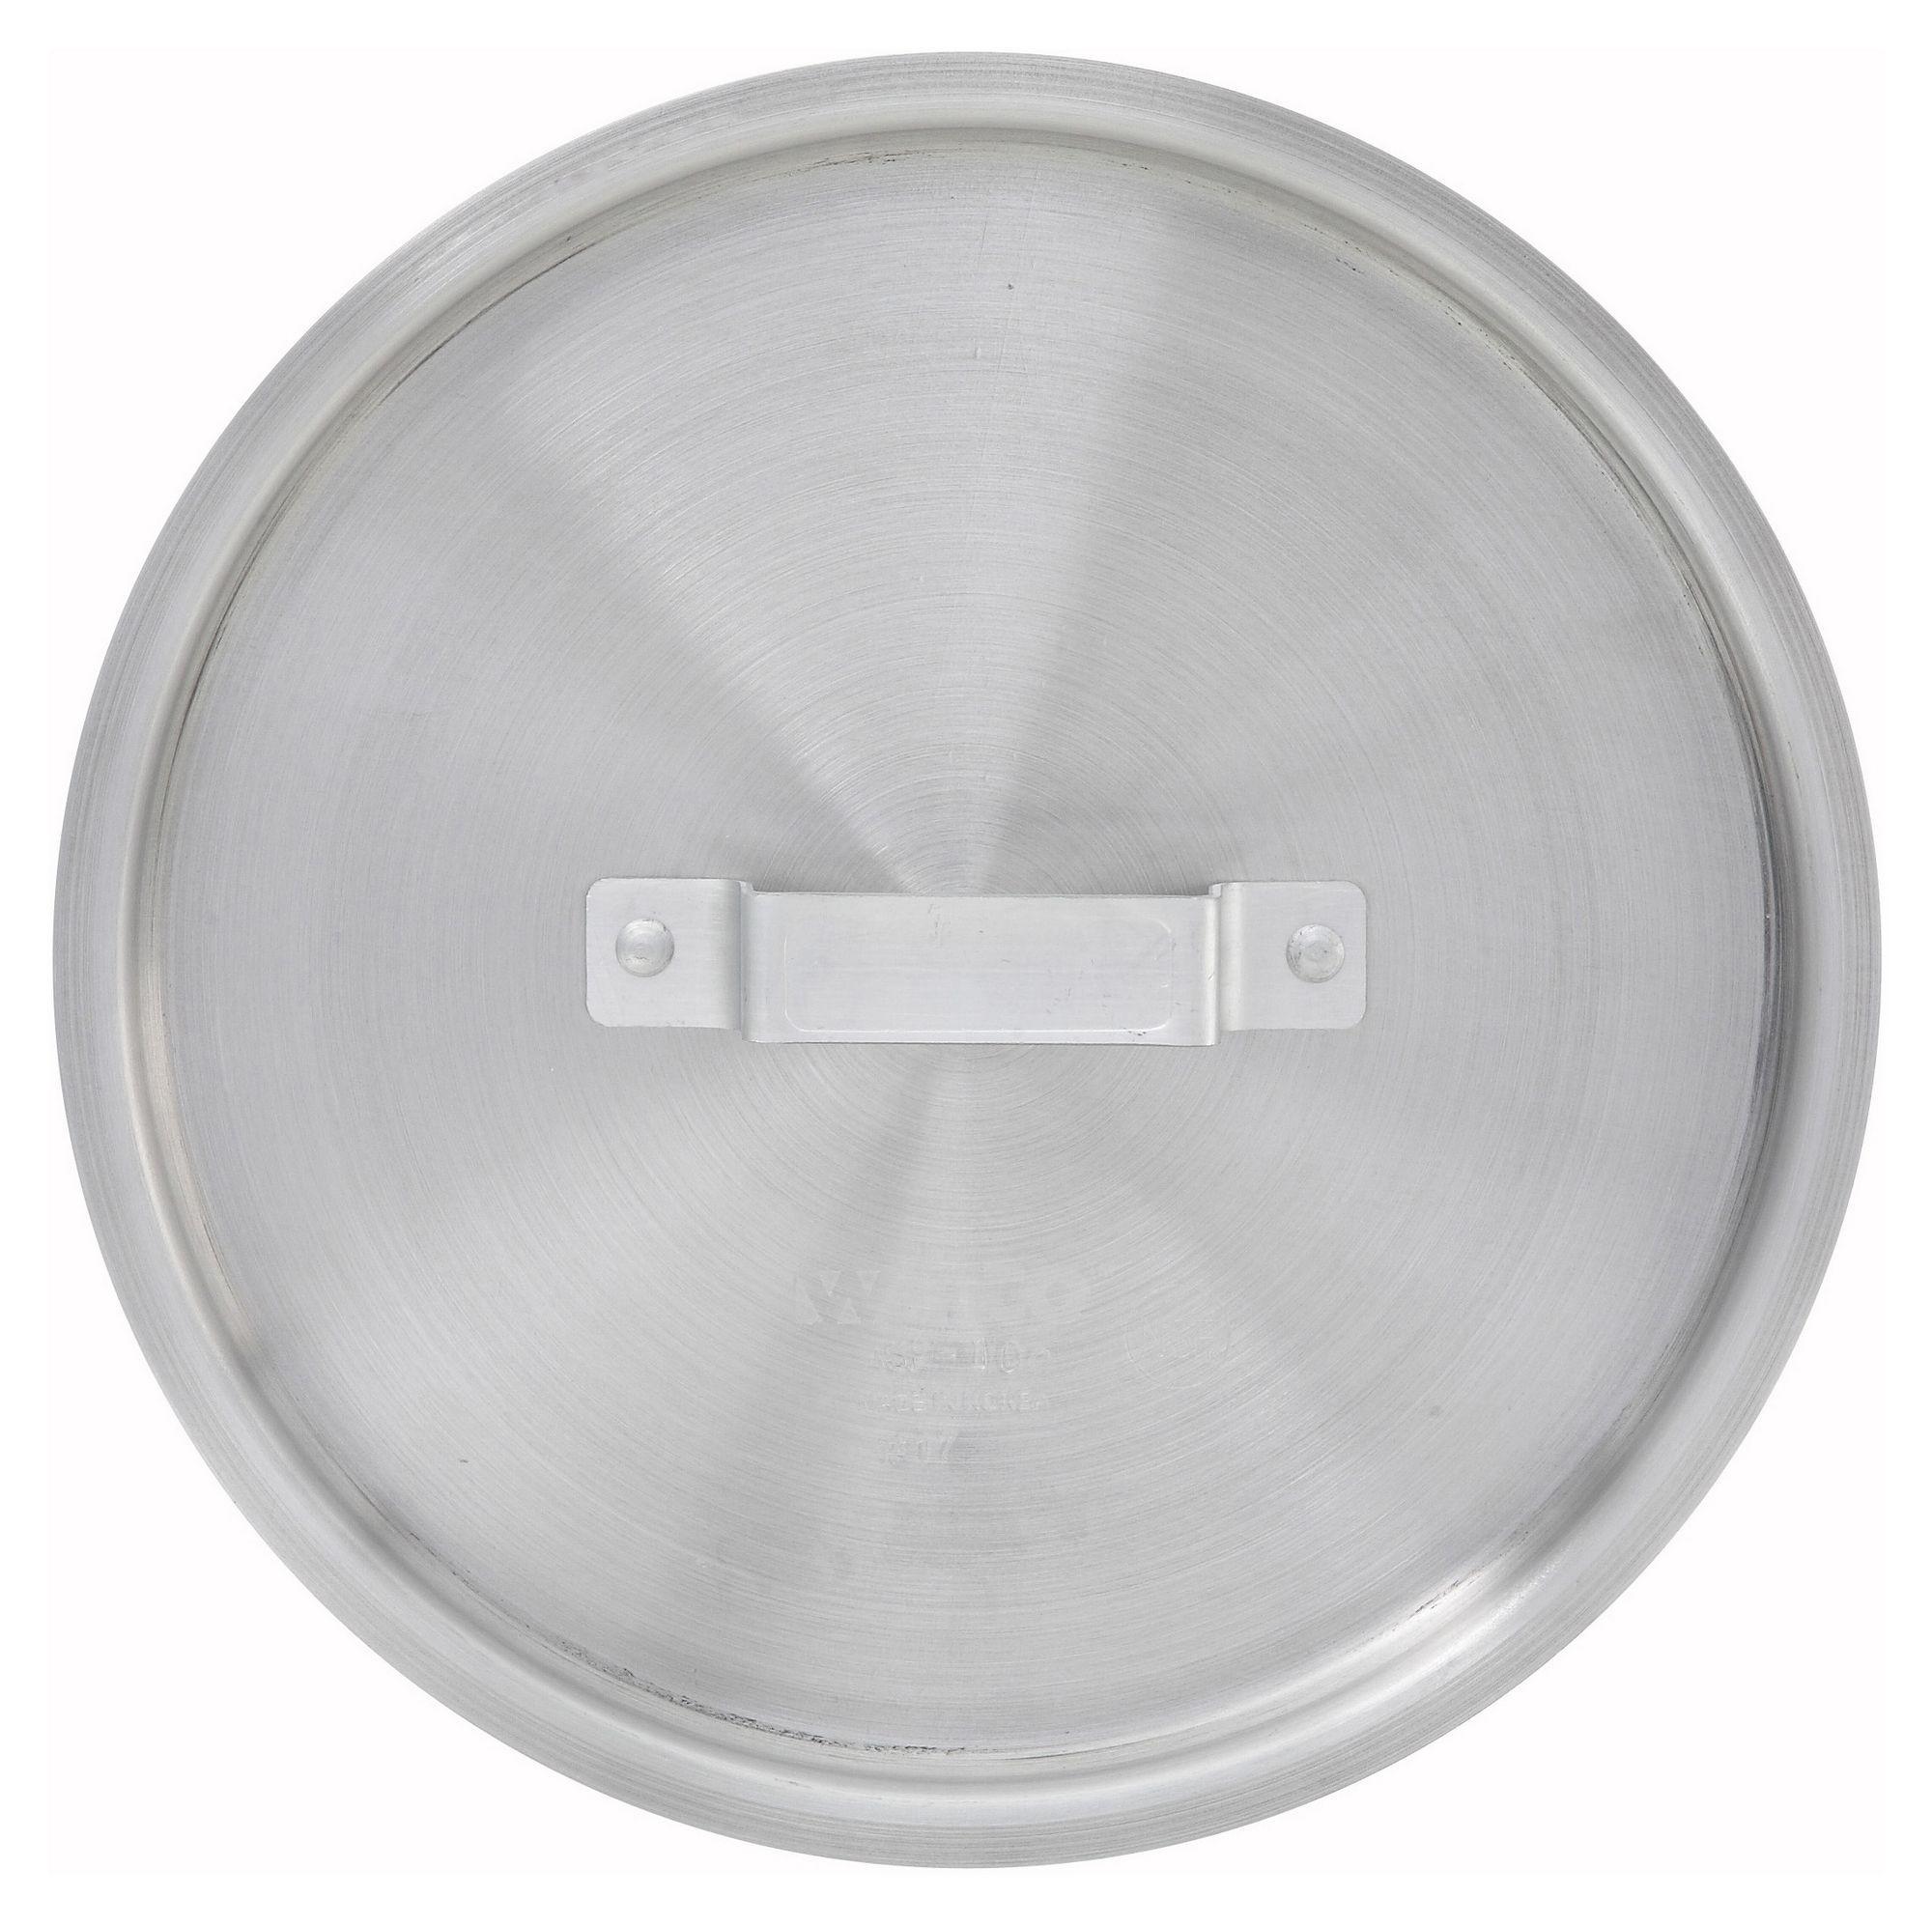 Winco ASP-10C Aluminum Cover for 10 Qt. Sauce Pan